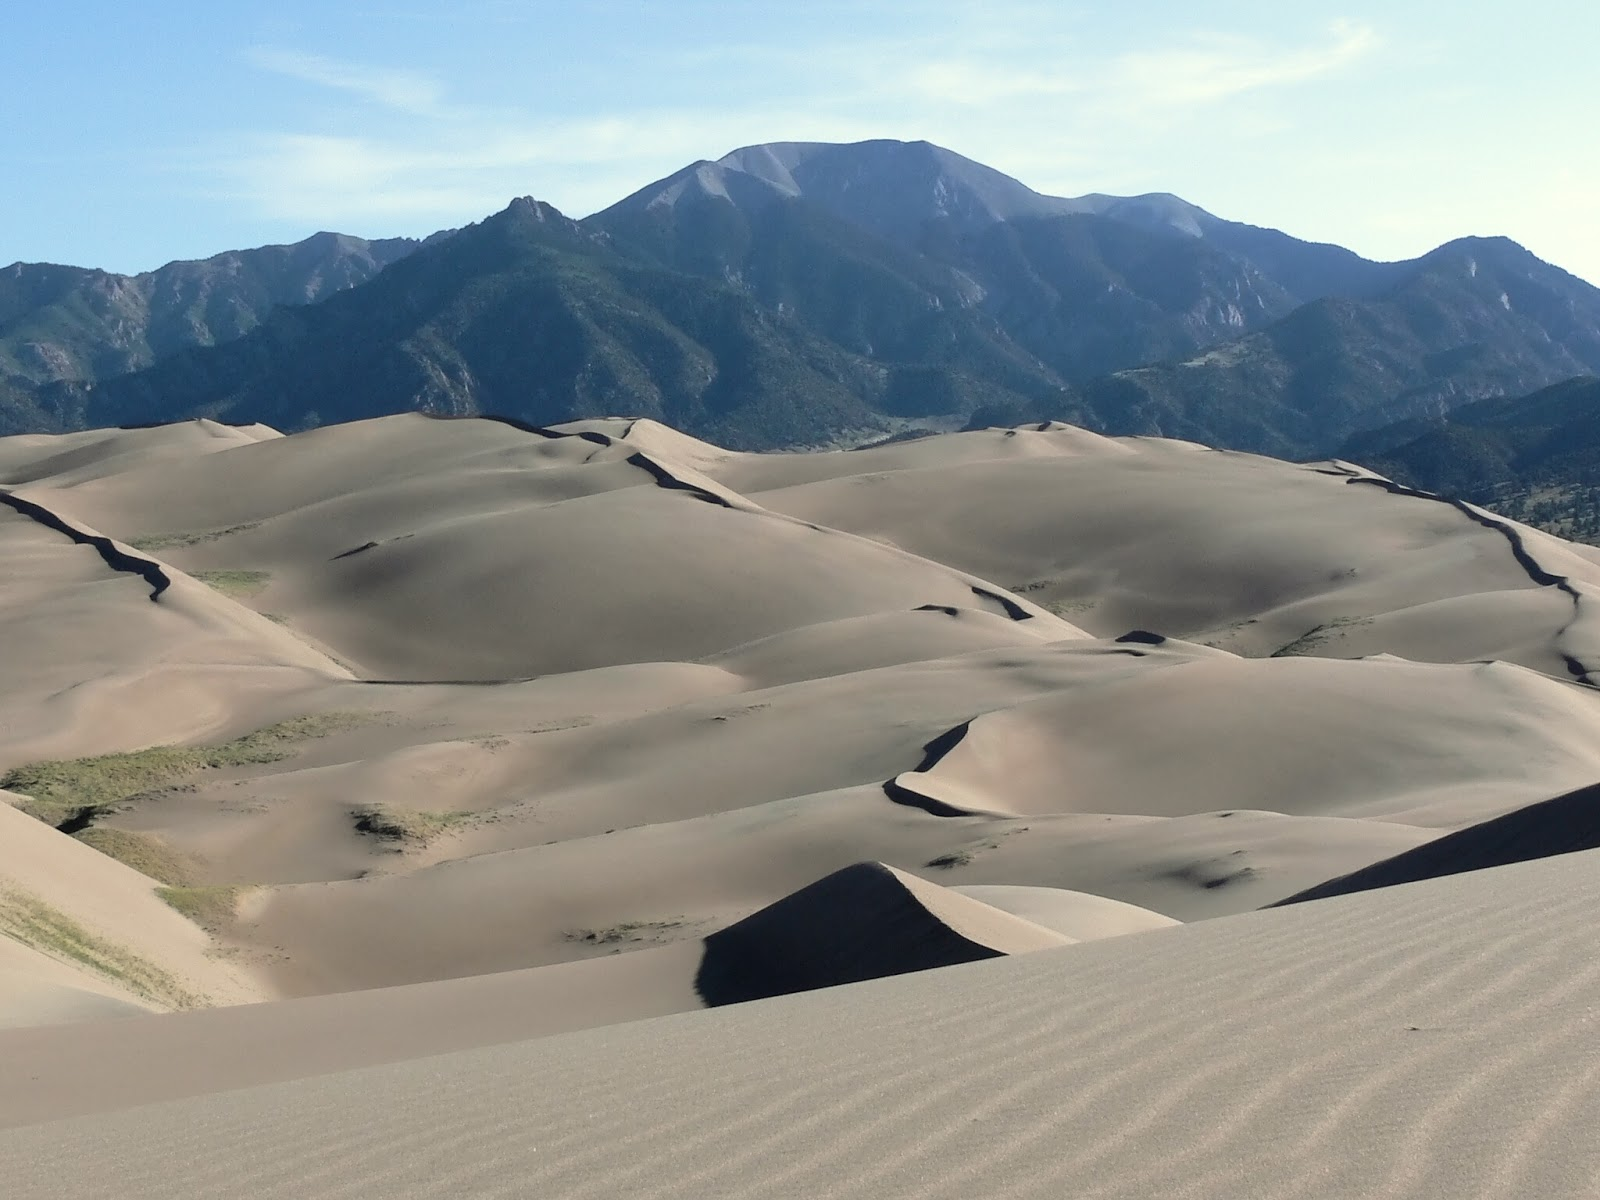 To Behold the Beauty: Great Sand Dunes National Park |Great Sand Dunes